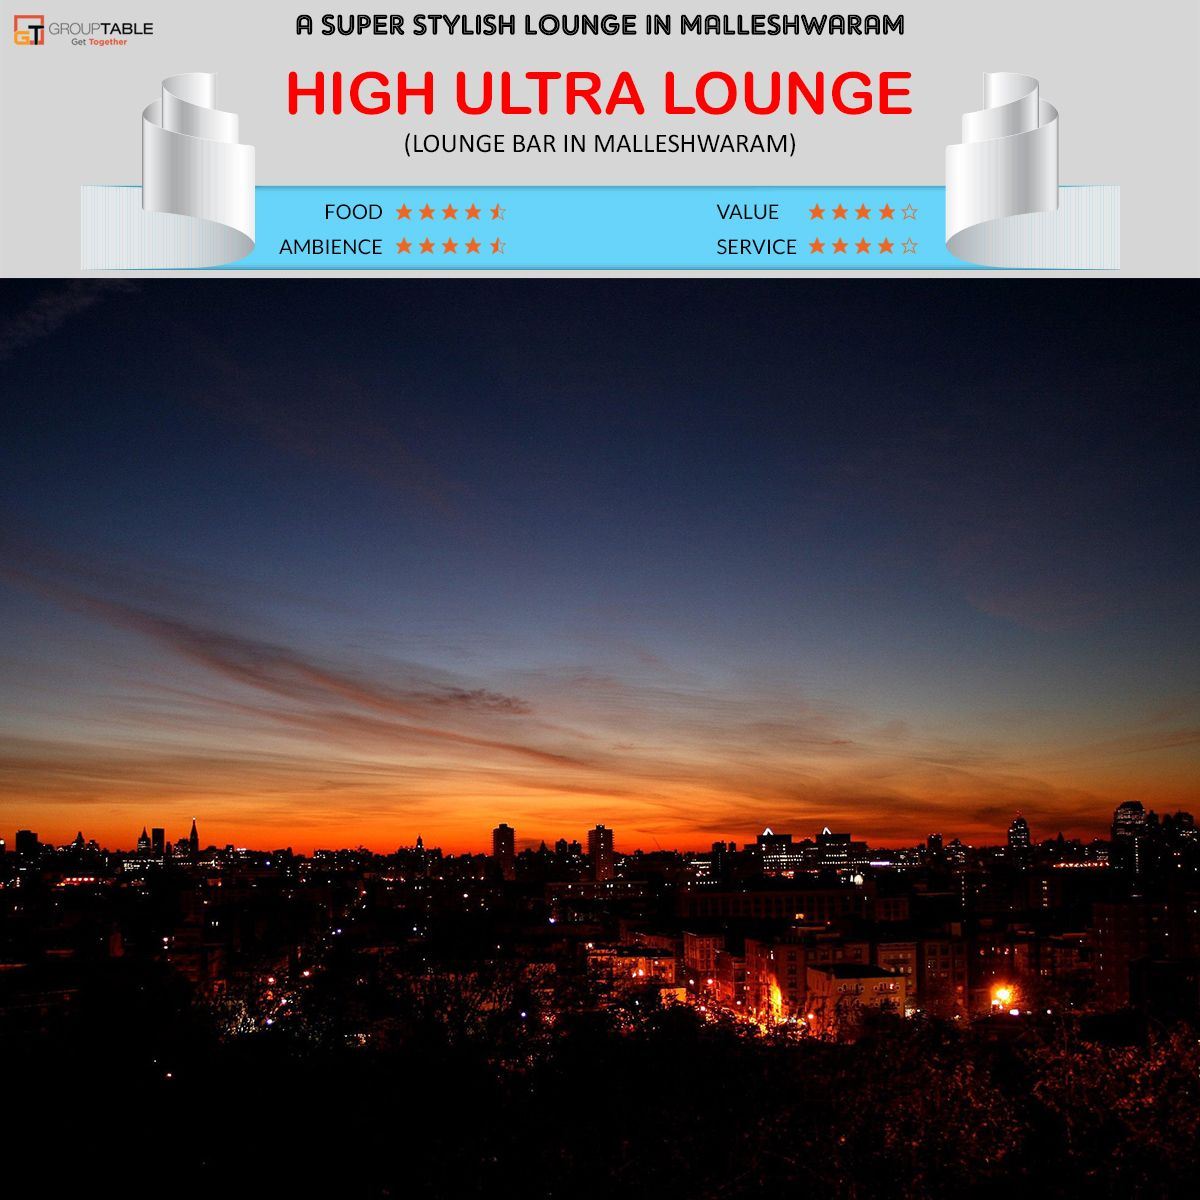 High Ultra Lounge Lounge Bar Bangalore: A Super Stylish Lounge In Malleshwaram | Book a table https://www.grouptable.com/bangalore/restaurants/high-ultra-lounge-malleshwaram